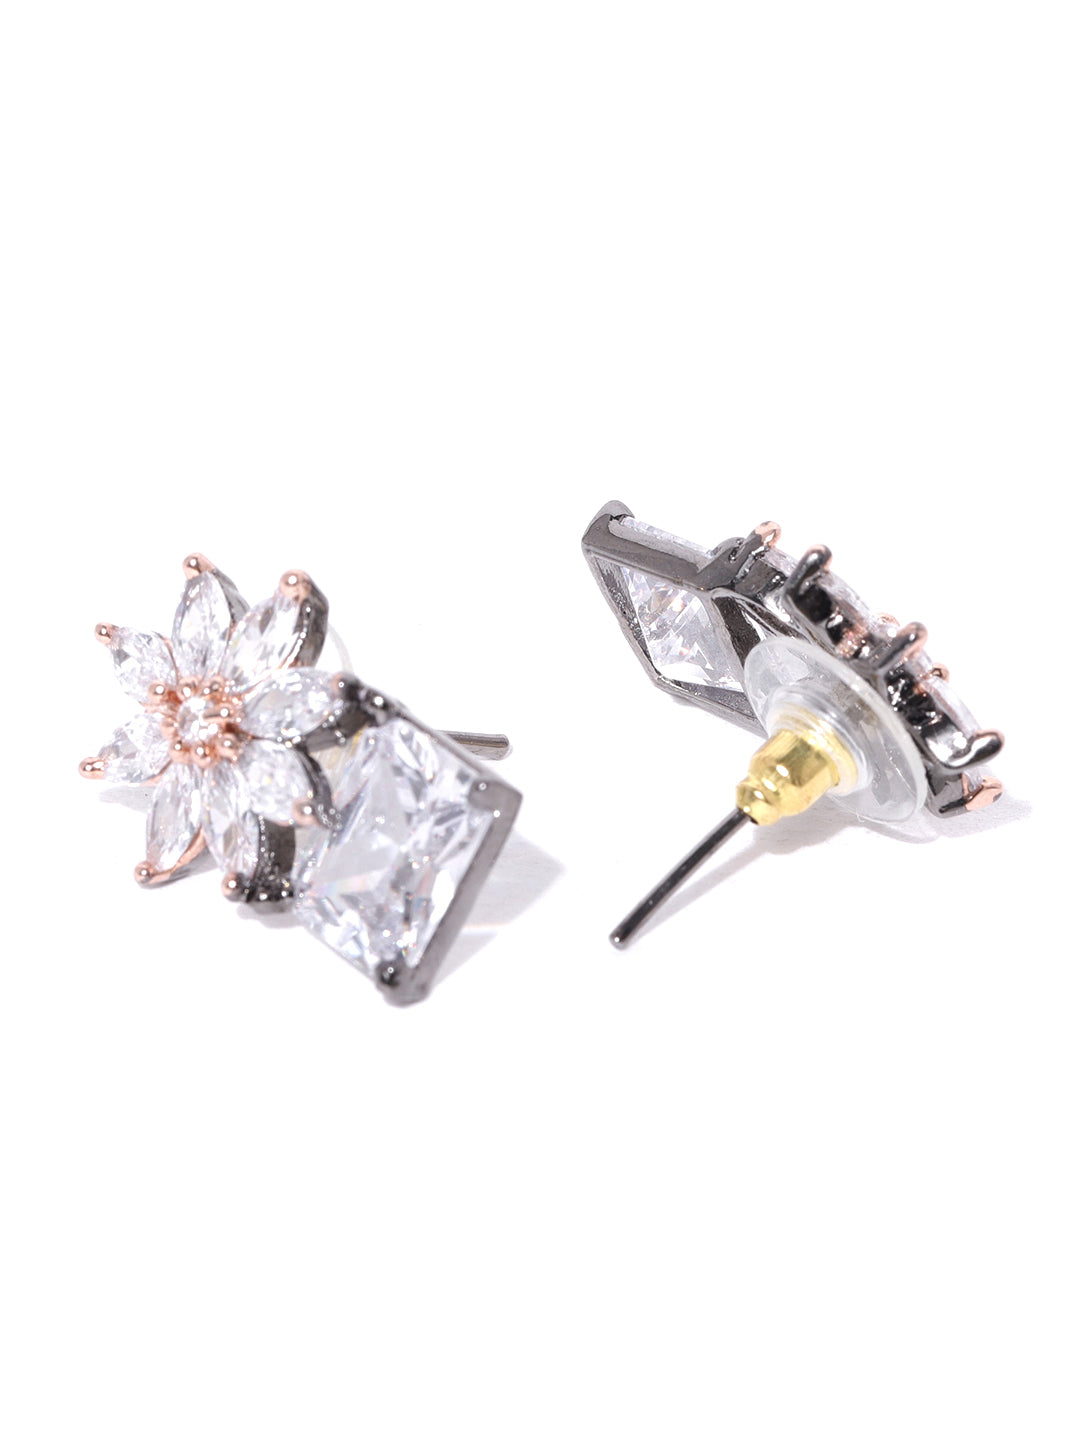 Gold-Plated American Diamond Studded Stud Earrings in Floral Pattern